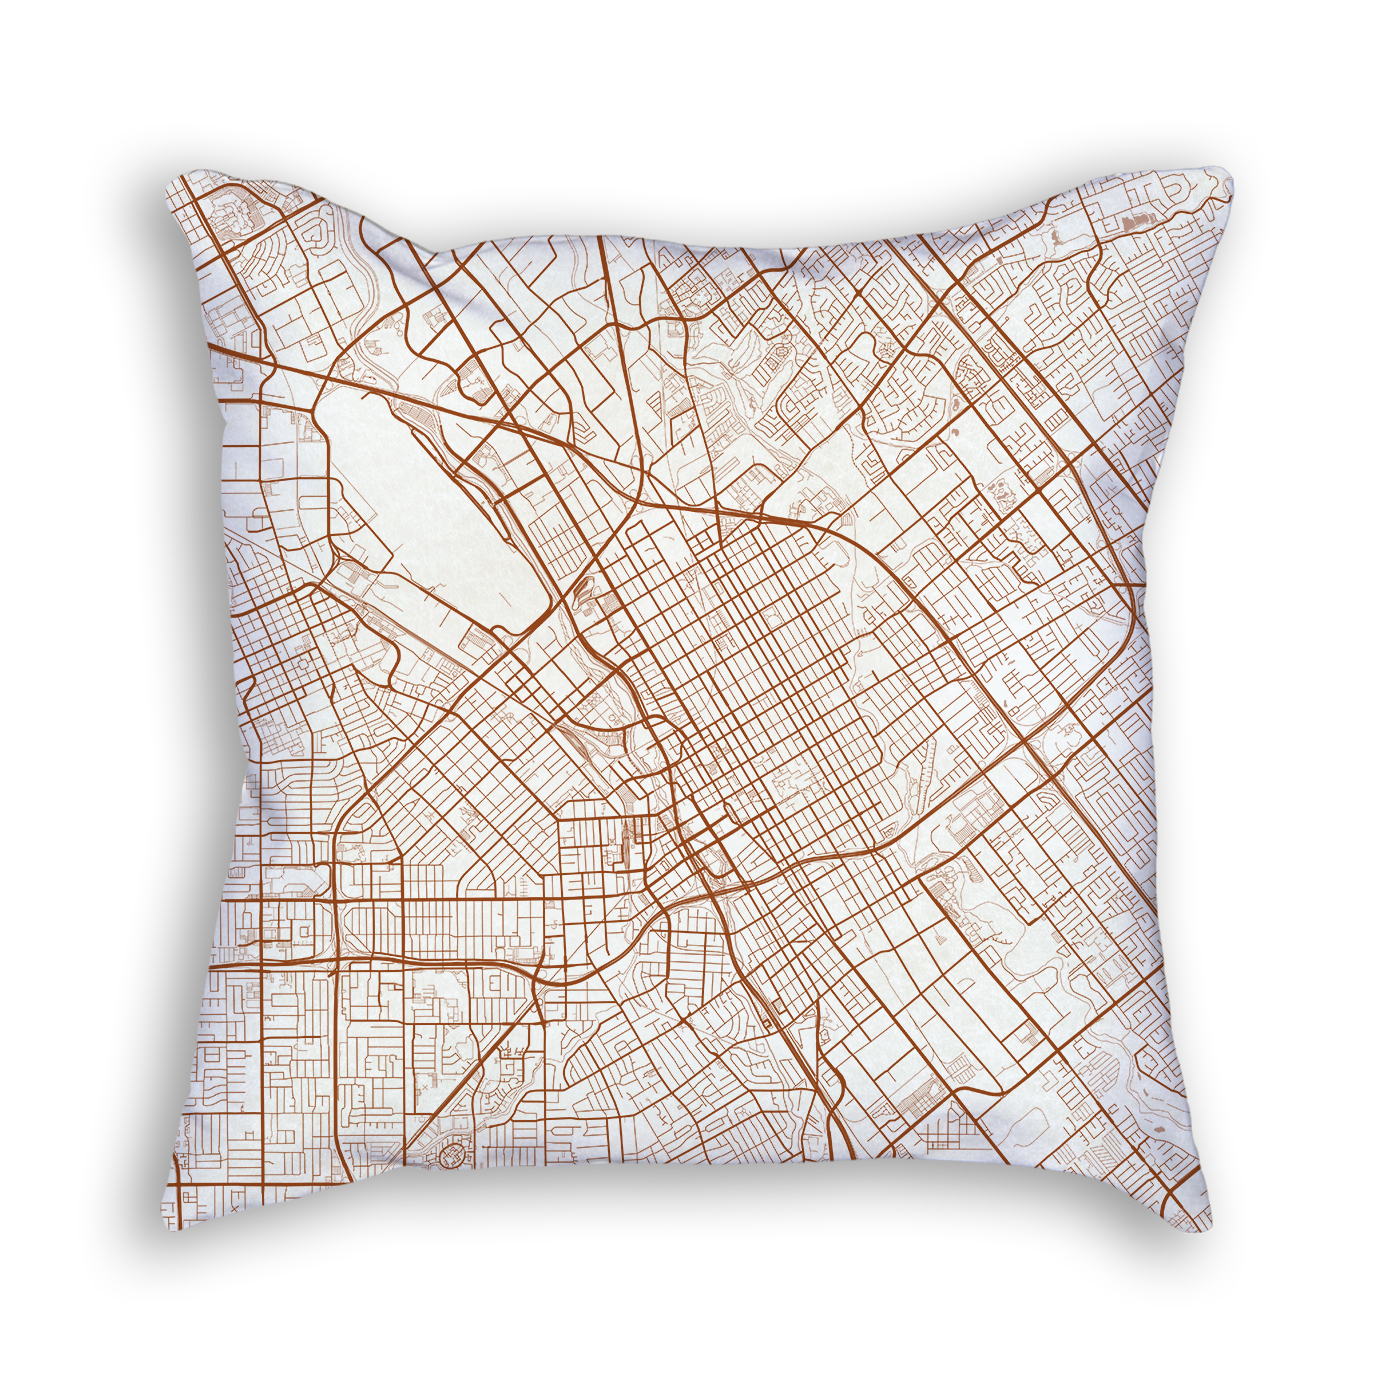 San Jose CA City Map Art Decorative Throw Pillow